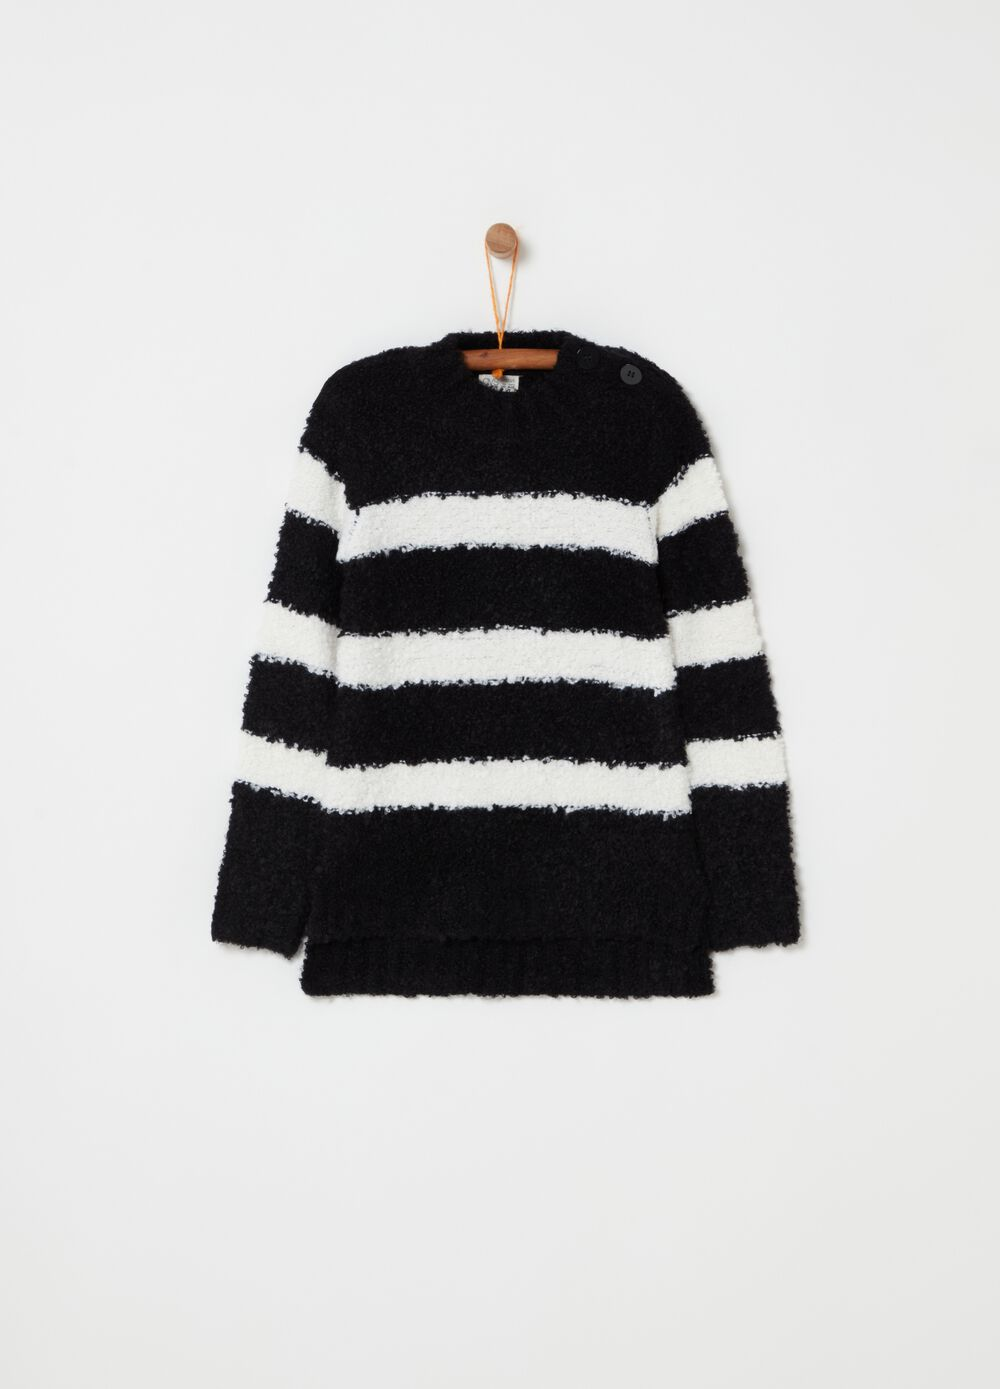 Knitted top with stripes and splits